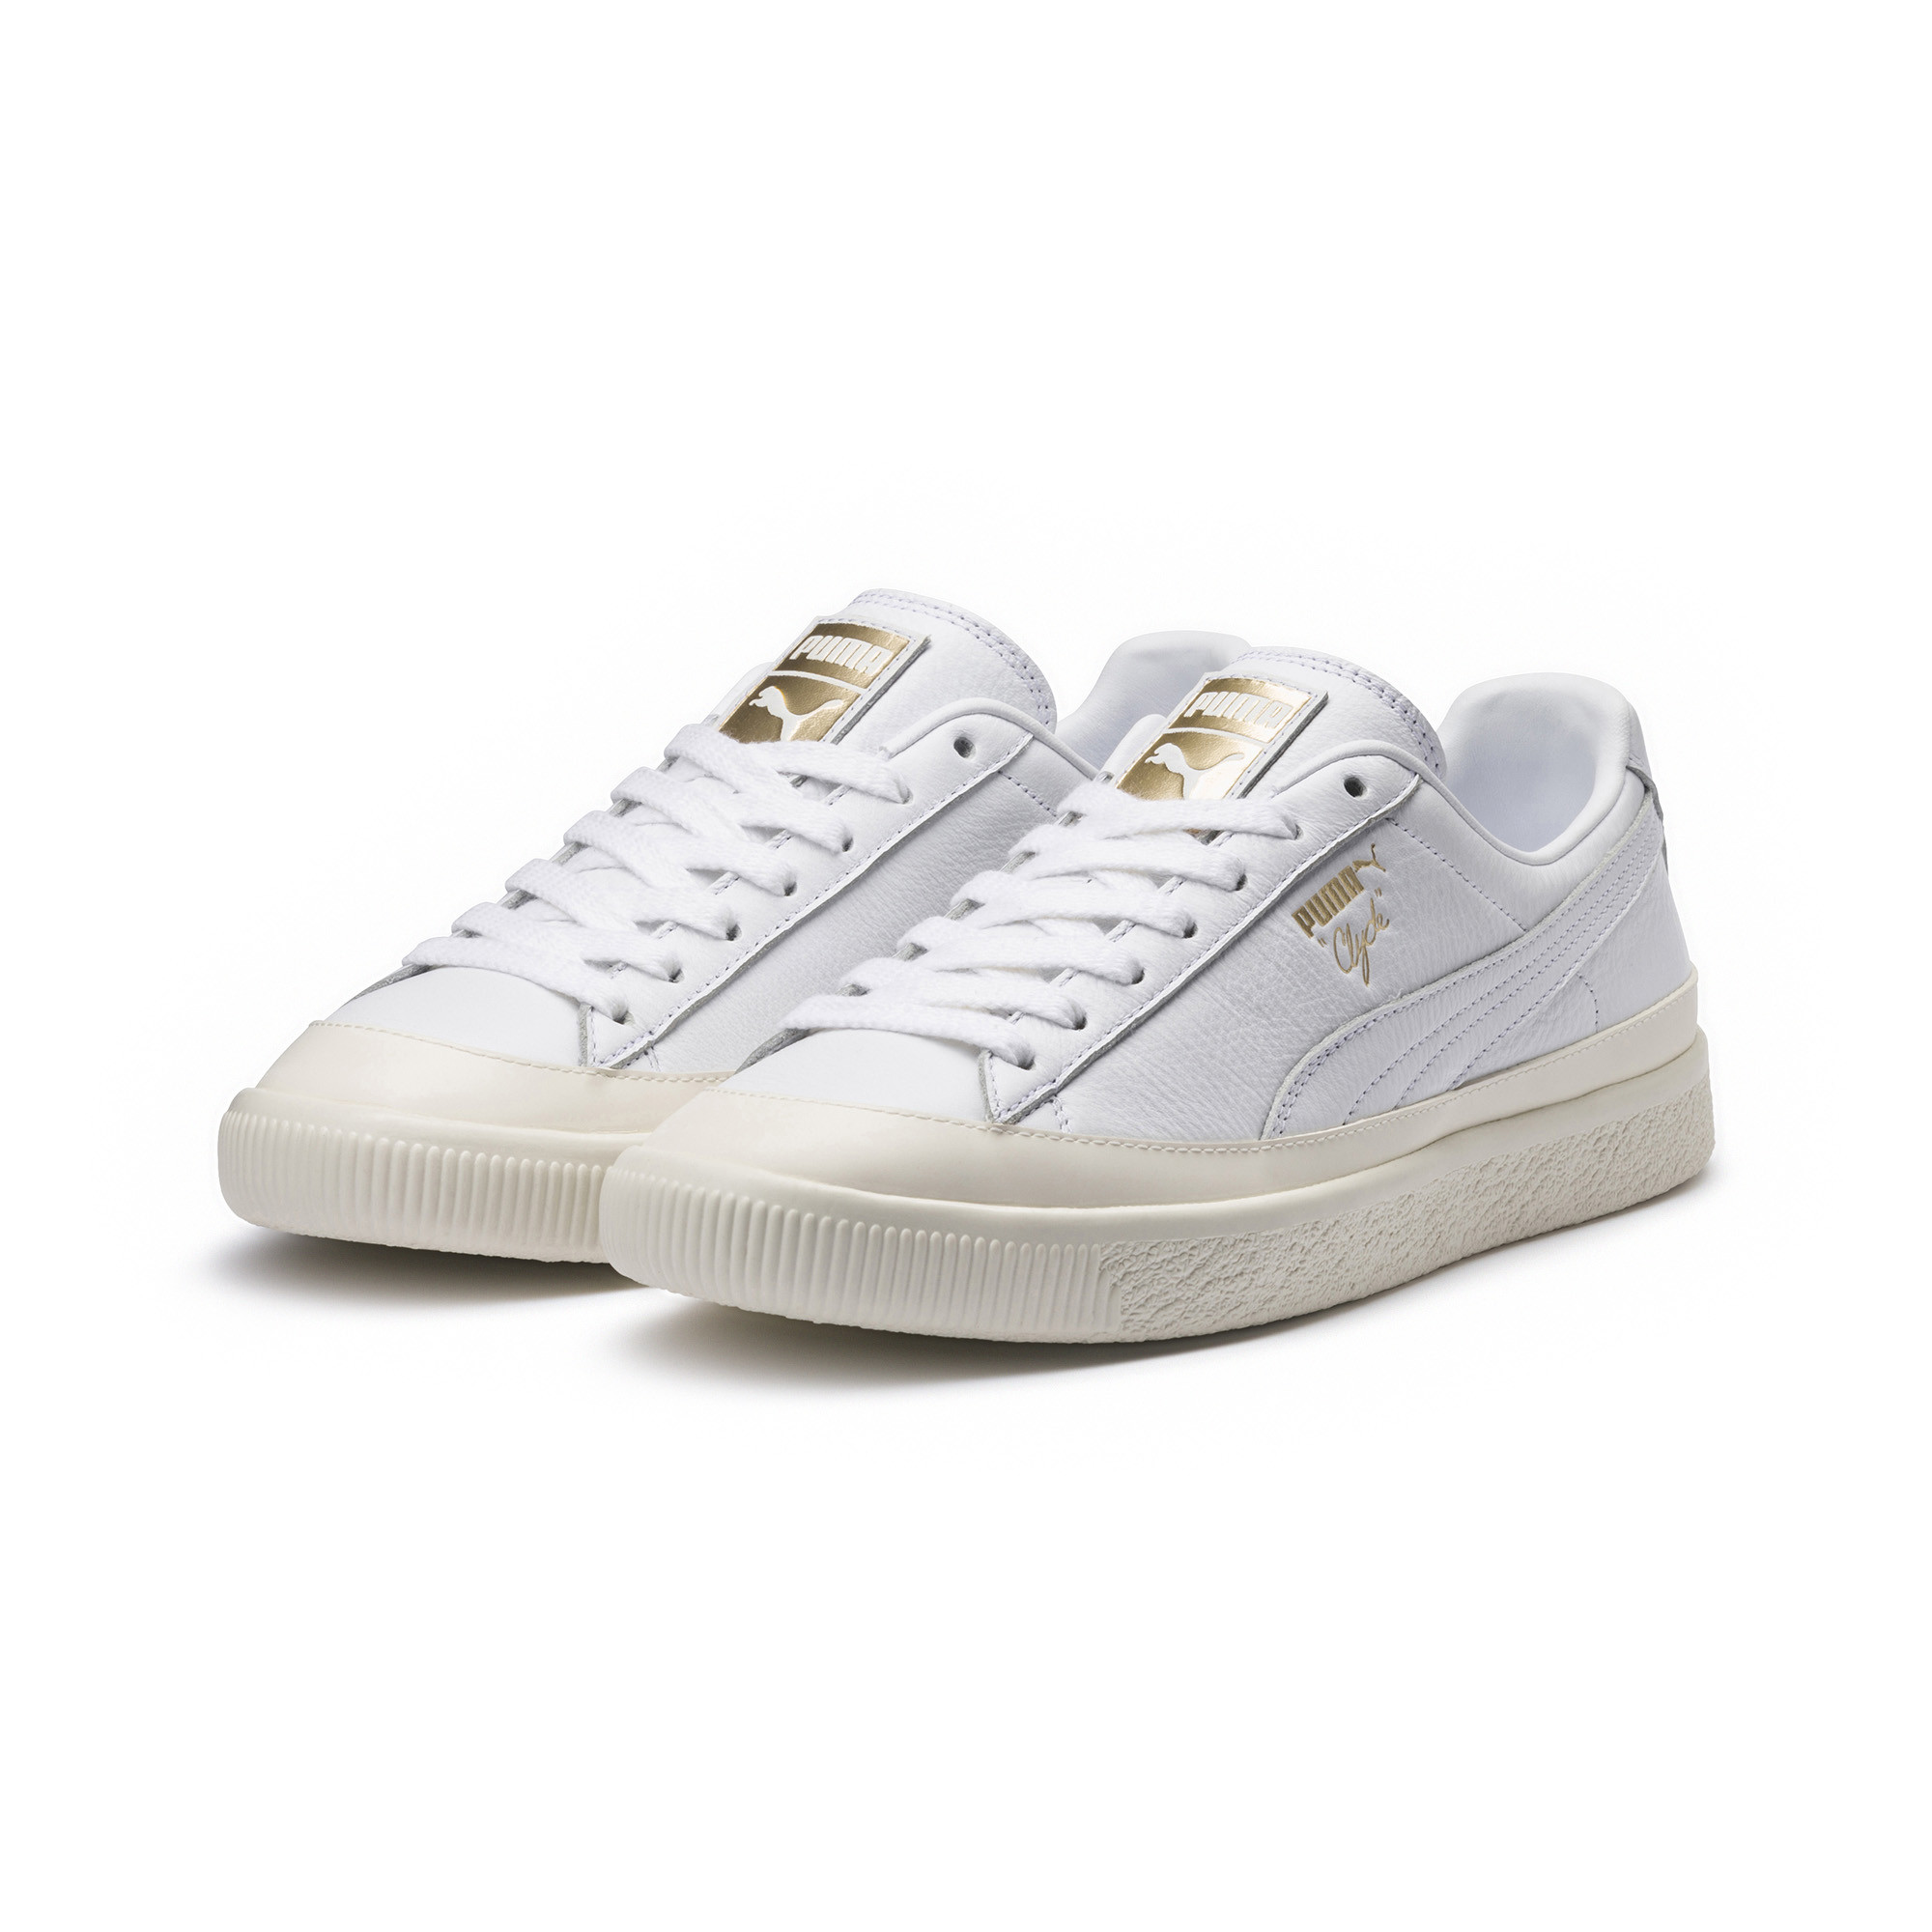 Image Puma Clyde Rubber Toe Leather Sneakers #2